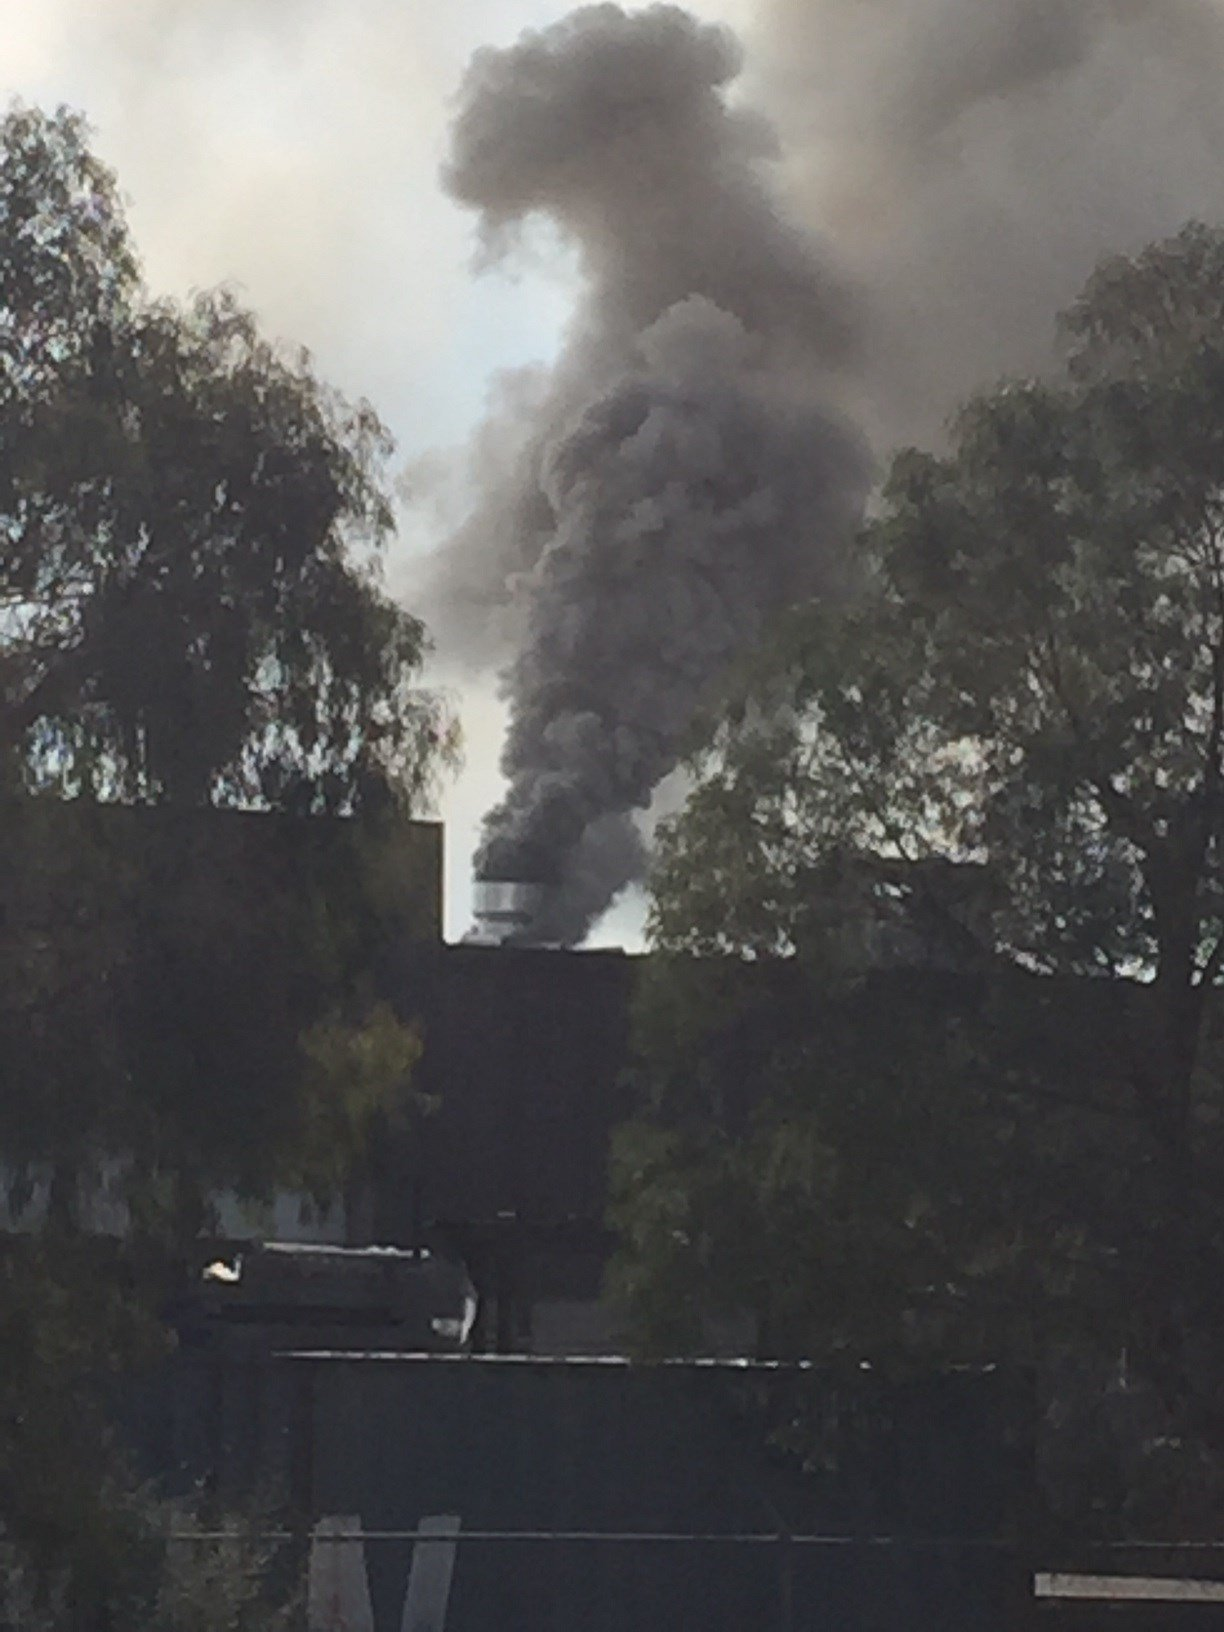 Smoke is seen coming from the Lindamar Industries building in Paso Robles. (Photo courtesy Betsy King)